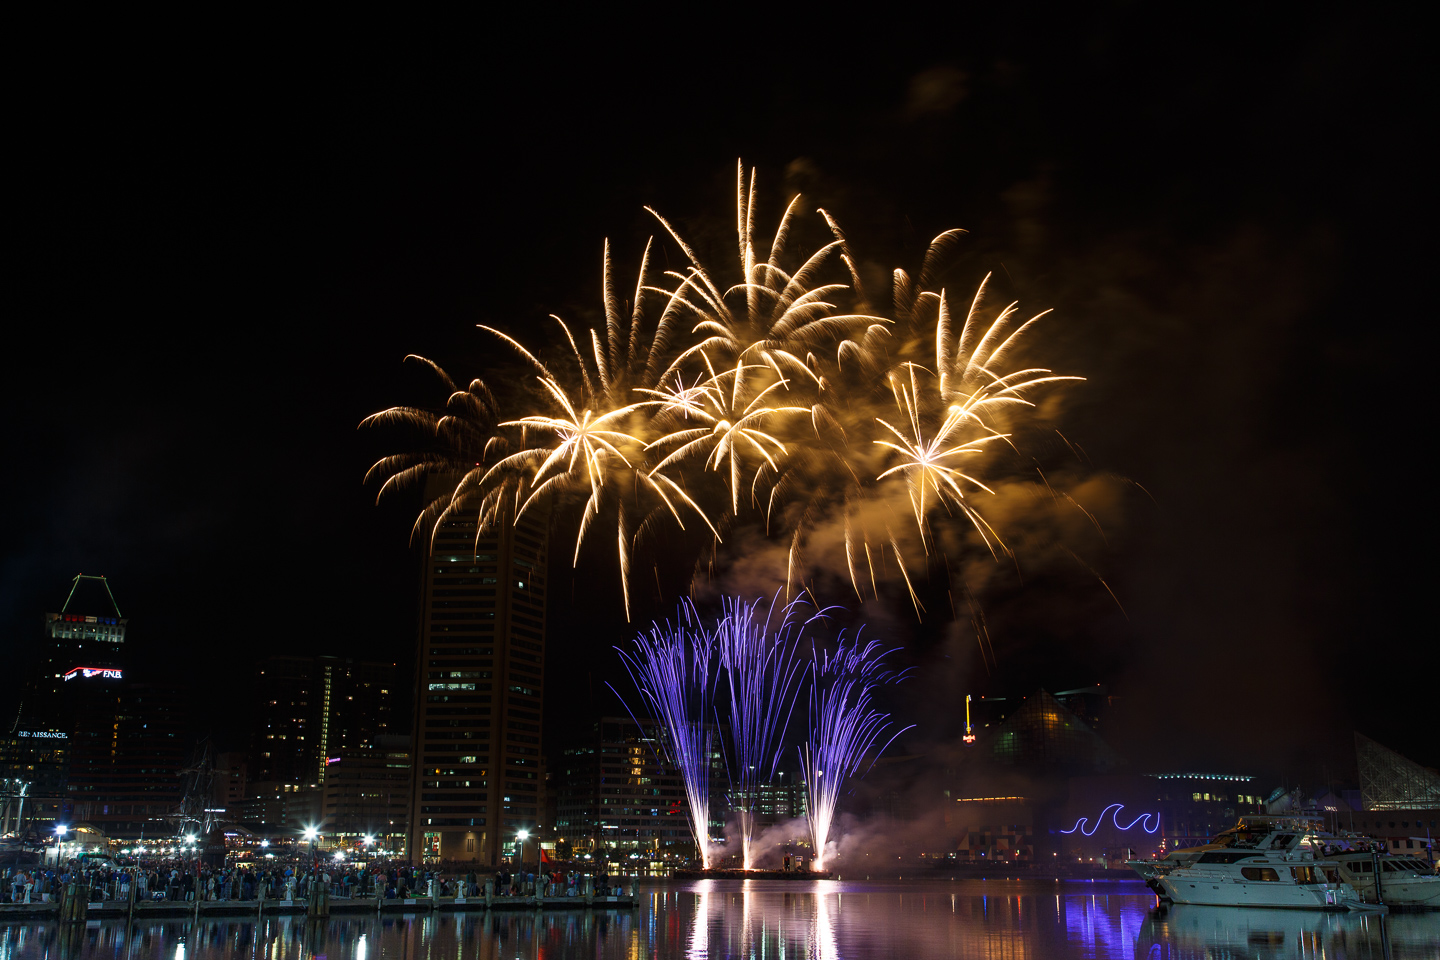 Largest fireworks display since 1812